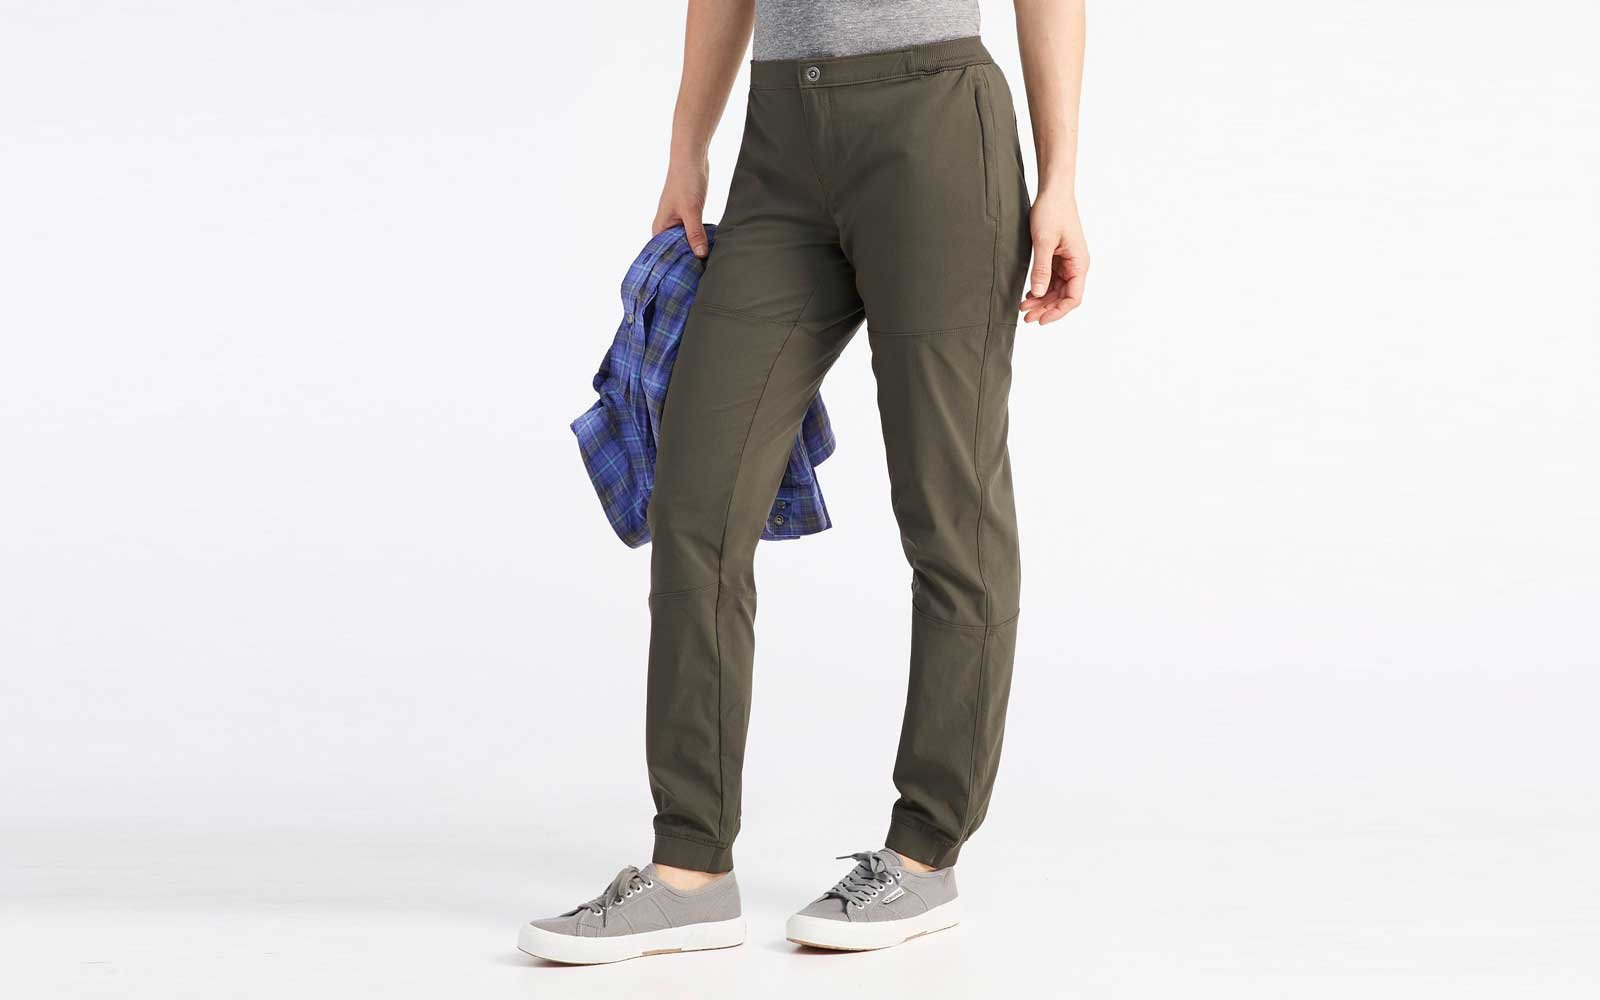 L.L.Bean Stretch-tek Travel Pants